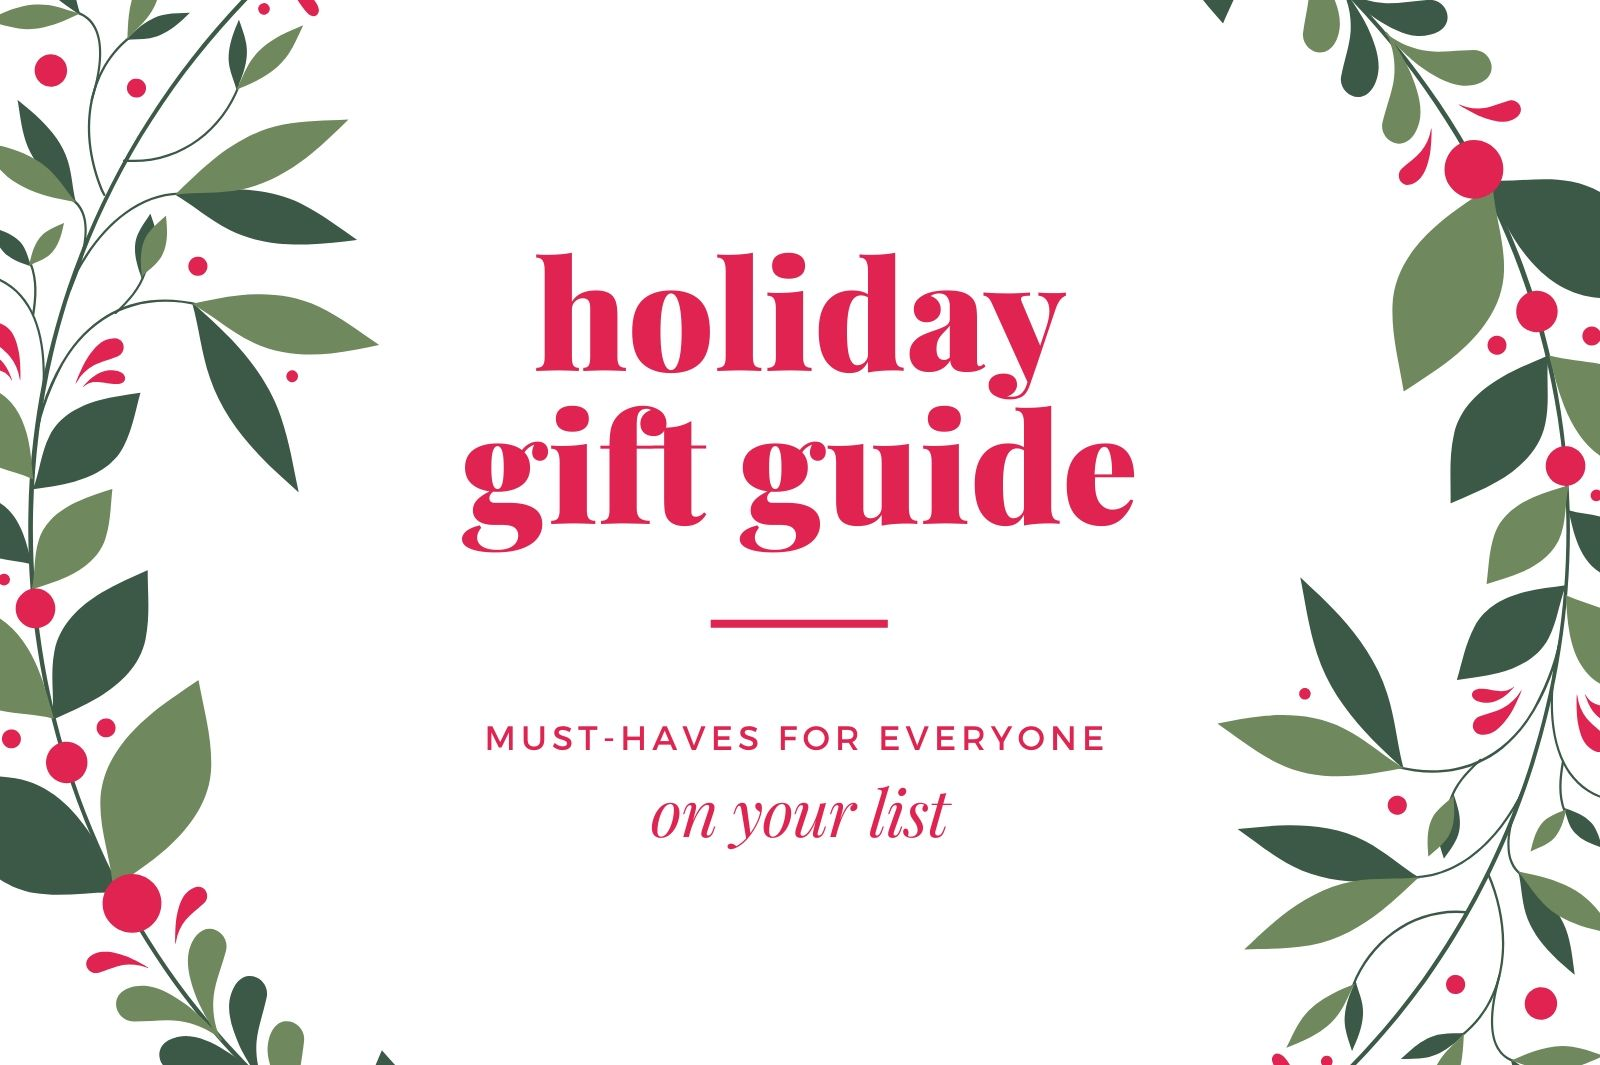 Must-Have Christmas Holiday Gift Guide!